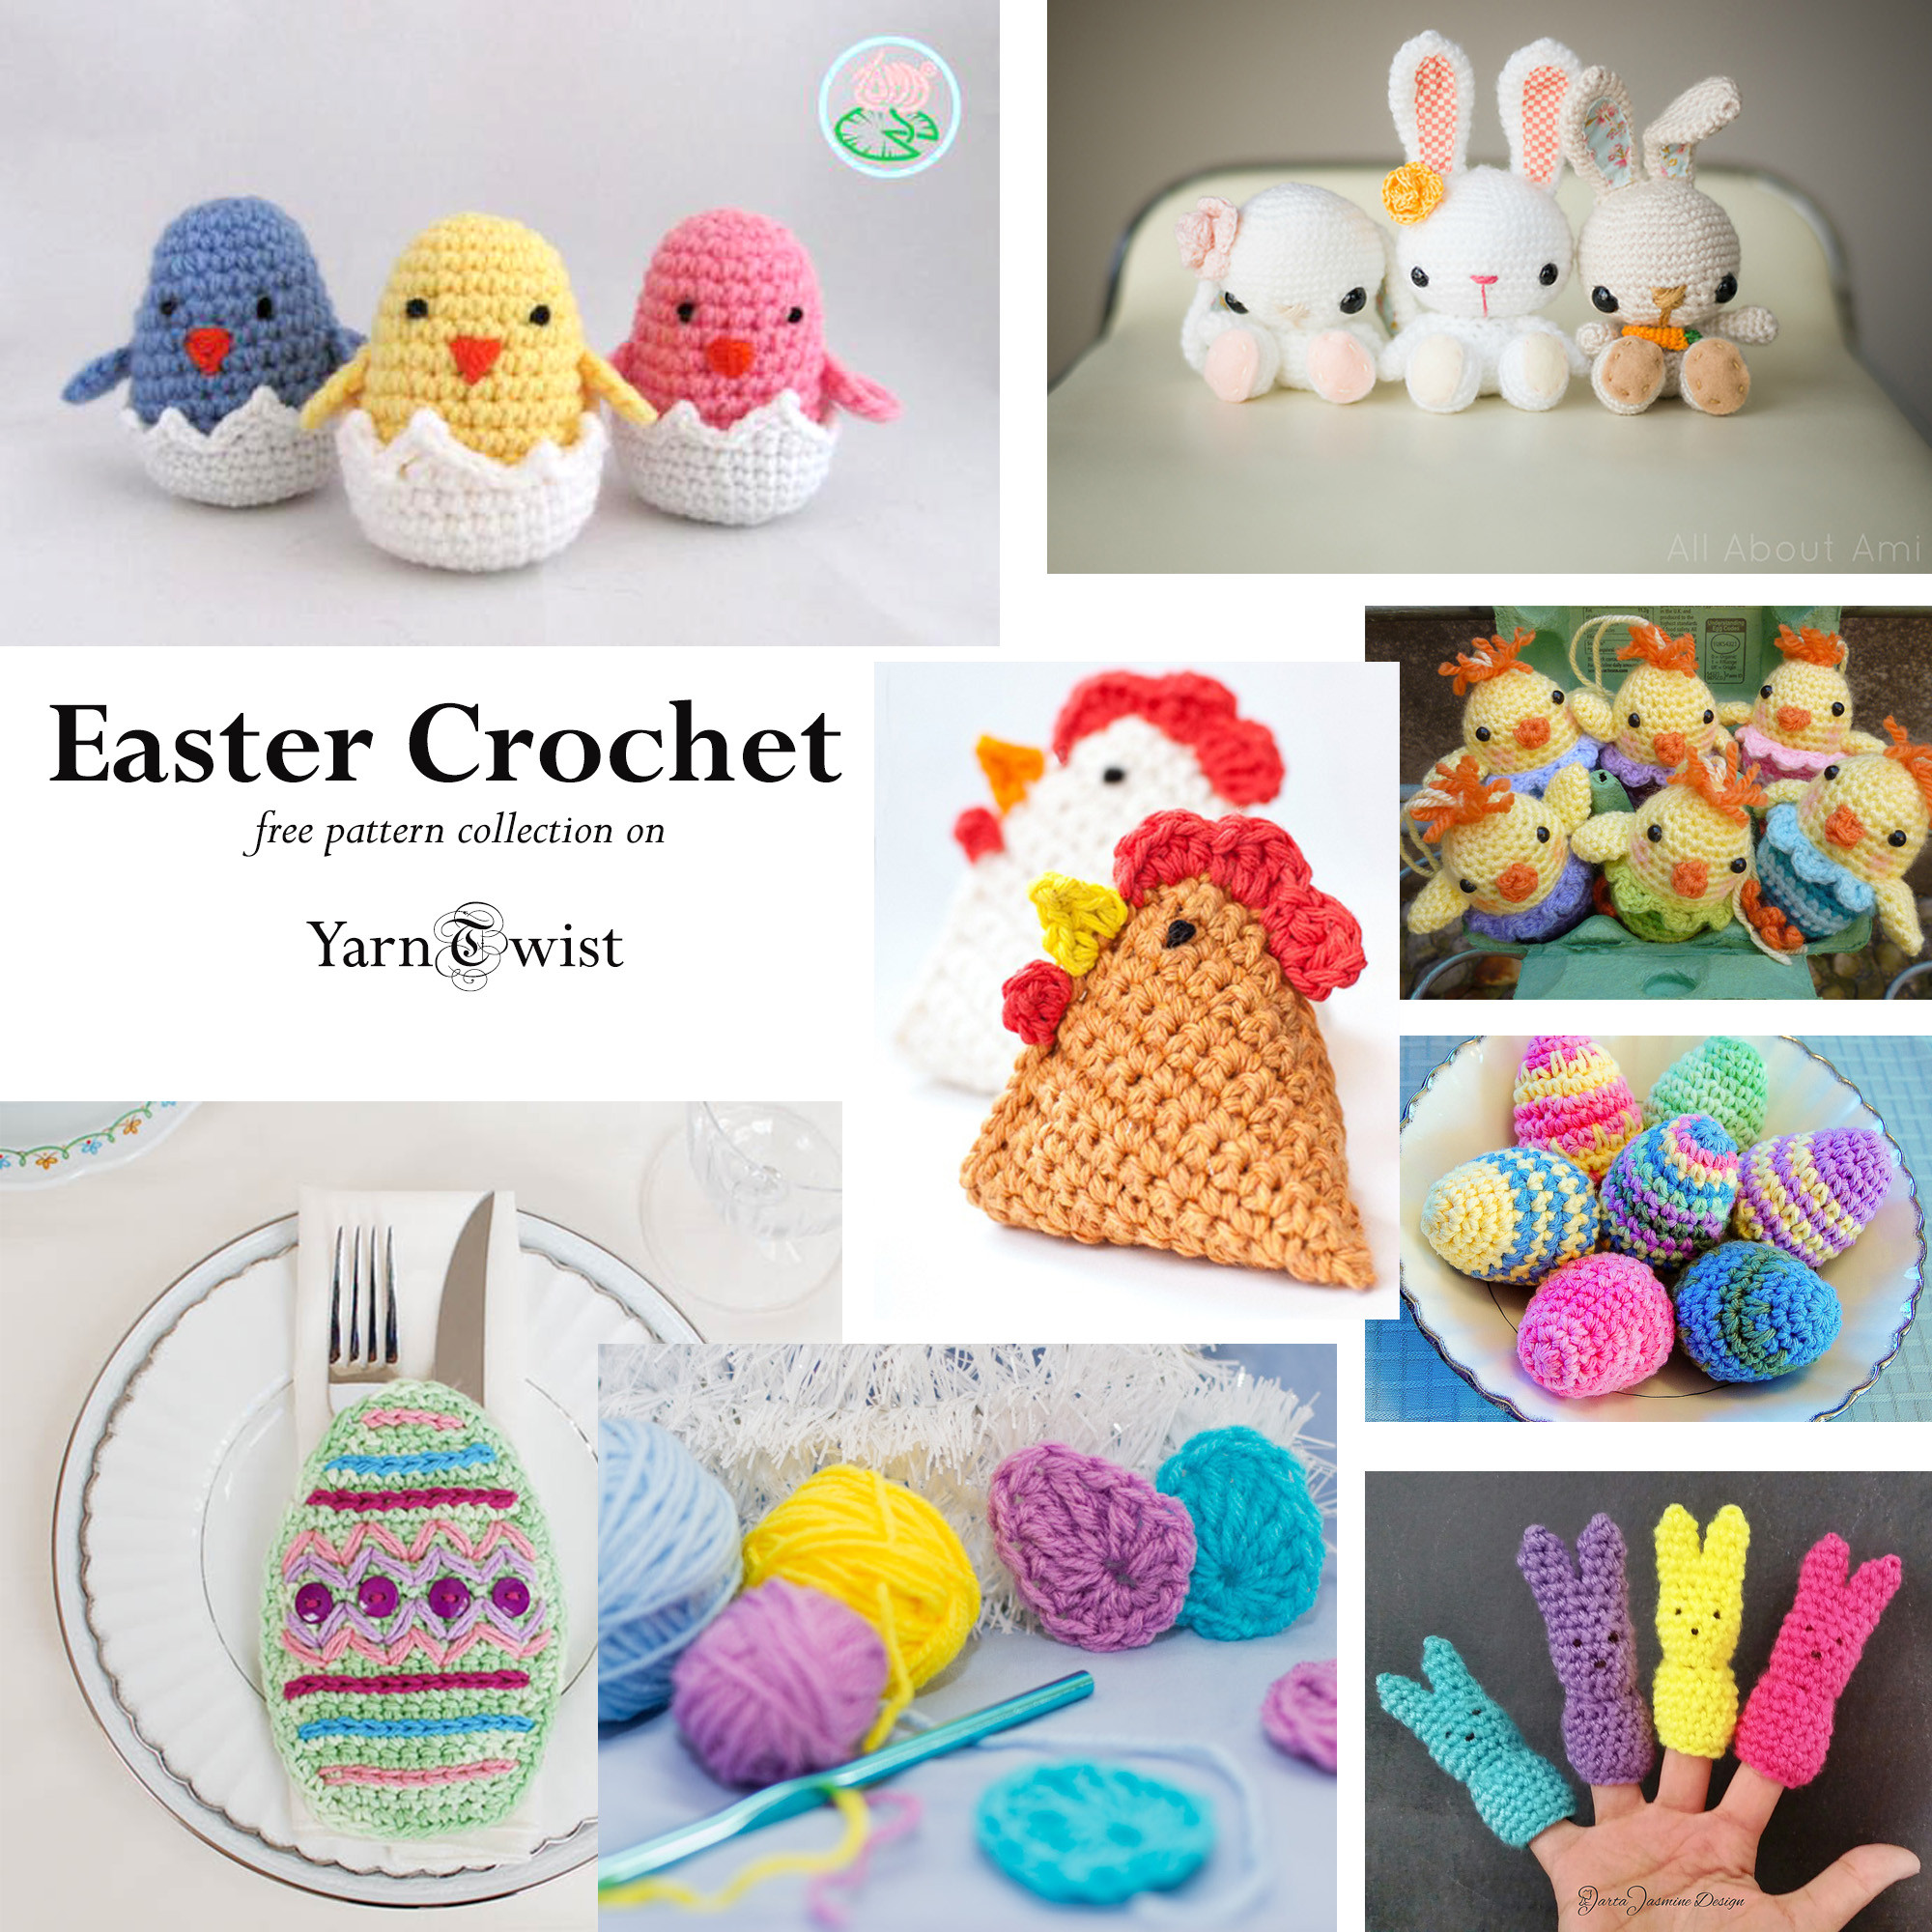 Best Of Free Printable Easter Crochet Patterns Dancox for Easter Crochet Of Top 40 Ideas Easter Crochet